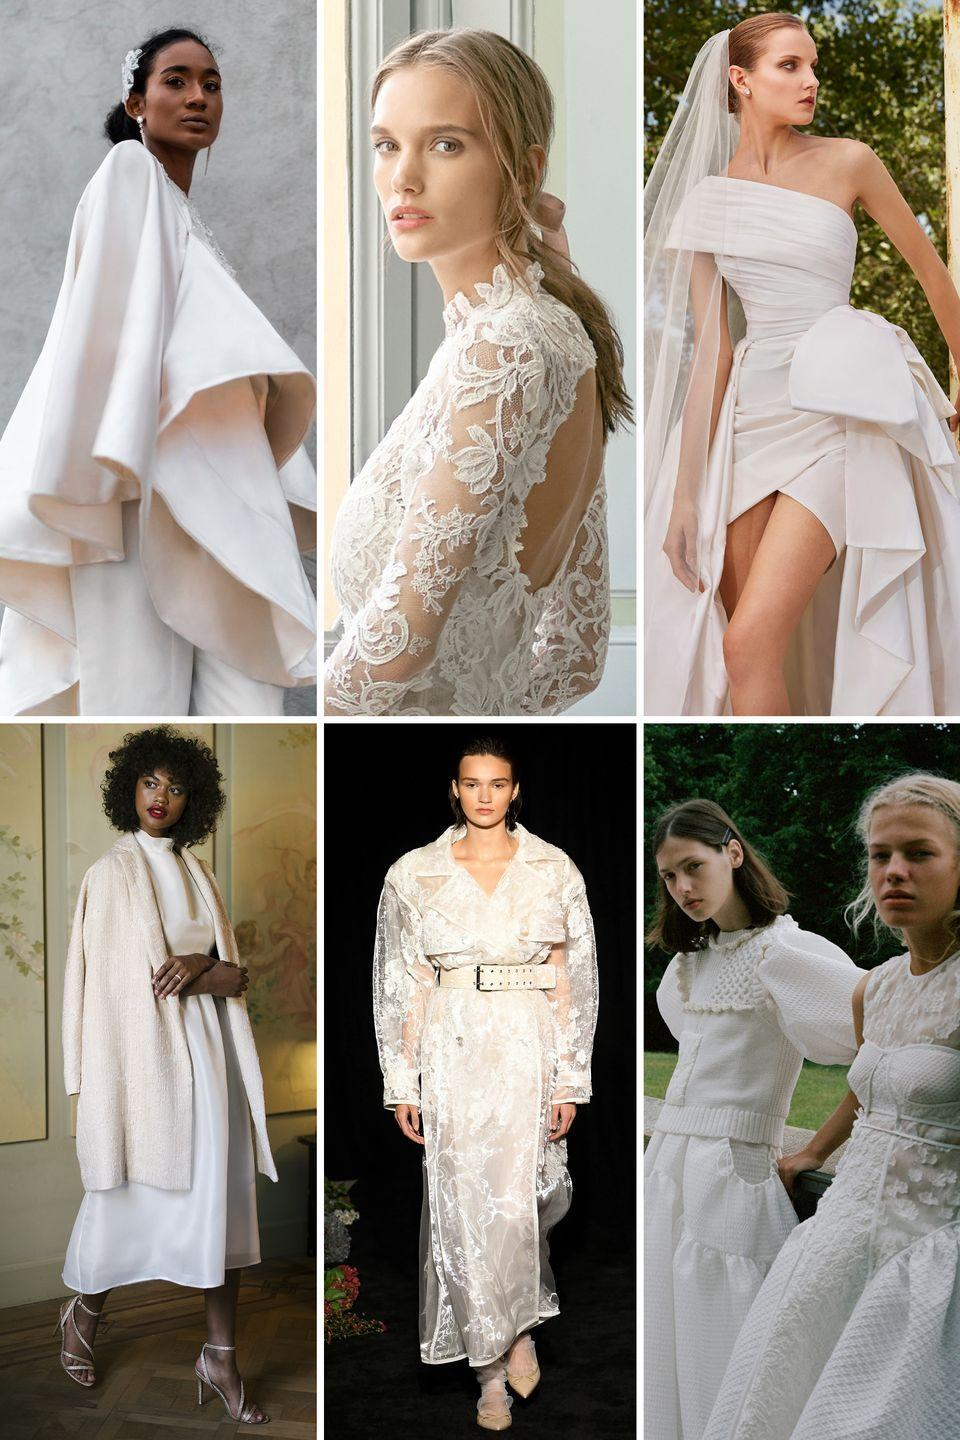 <p>A few seasons back, it was separates that were all the rage; then came statement suiting—but this is all about the layering.</p><p>Wedding wardrobes require versatility and longevity as celebrations continue to change, move, and morph in 2021, and in such uncertain times, your fashion choices are one thing you can control. Make them work for you and whatever unique celebration you have in the works by picking pieces that you won't want to wear just once. From sculptural capes to knitwear add-ons, lace-appliquéd trenches, and toppers, these bridal accents are responsible for the return of the convertible dress—in ways we've not seen before. </p><p><em>Clockwise from left: Andre Iyamah Bridal Fall 2020; Monique Lhuillier Bridal Fall 2020; Elie Saab Bridal Spring 2021; Valentin Avoh Bridal Fall 2020; Danielle Frankel Bridal Fall 2020; Cecilie Bahnsen Spring 2021. </em></p>